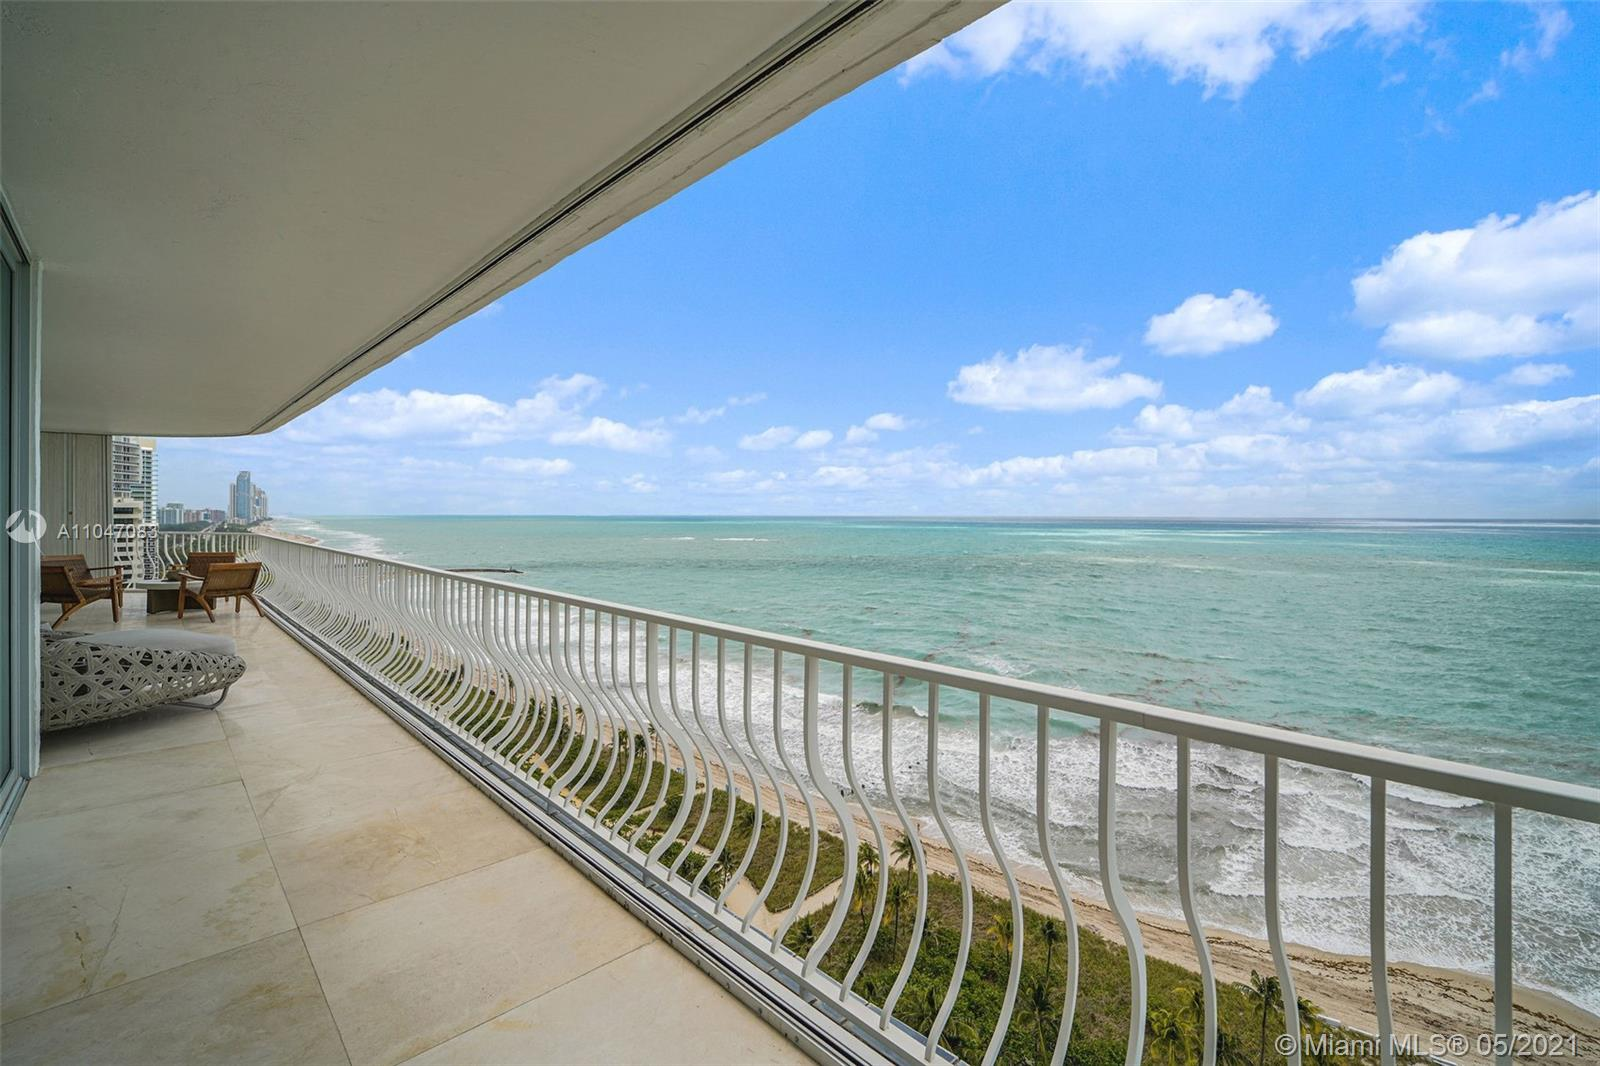 Spectacular Penthouse apartment with breathtaking views of the ocean and Miami Beach. Located in the heart of prestigious Bal Harbour, this gorgeous and spacious masterpiece was completely renovated in 2015. The renovation includes a re-designed floor plan, new electrical, new plumbing, new AC HVAC units, 36x36 marble flooring throughout, Quartz and Onyx countertops, custom-built grain-matched walnut cabinetry, control-4  Intelligent audio/video system throughout the apartment and much more.  The apartment is move-in ready! Sold furnished and includes a highly desired, premium location poolside cabana with a full bathroom. Building just completed a major renovation including a new roof. Low maintenance. 1 Assigned Parking Space & 1 Valet Parking. 40 YEAR RECERTIFICATION IS ALMOST COMPLETE!